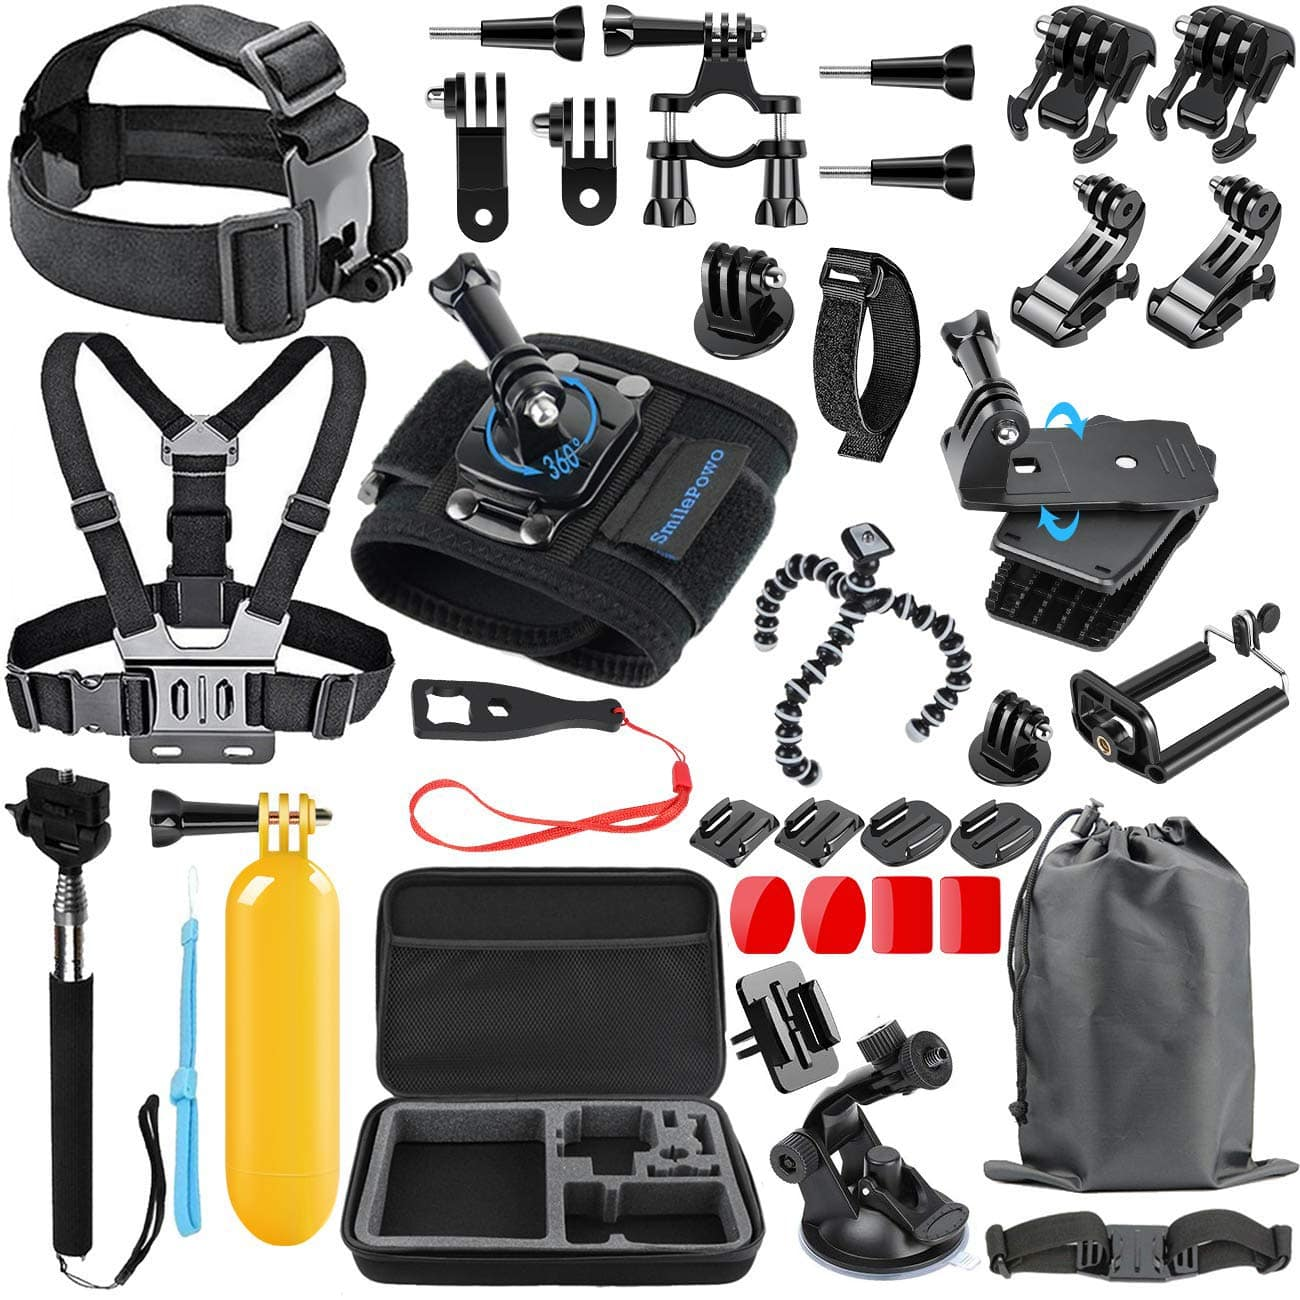 48-in-1 Camera Accessories Kit for GoPro $14.99 @Amazon